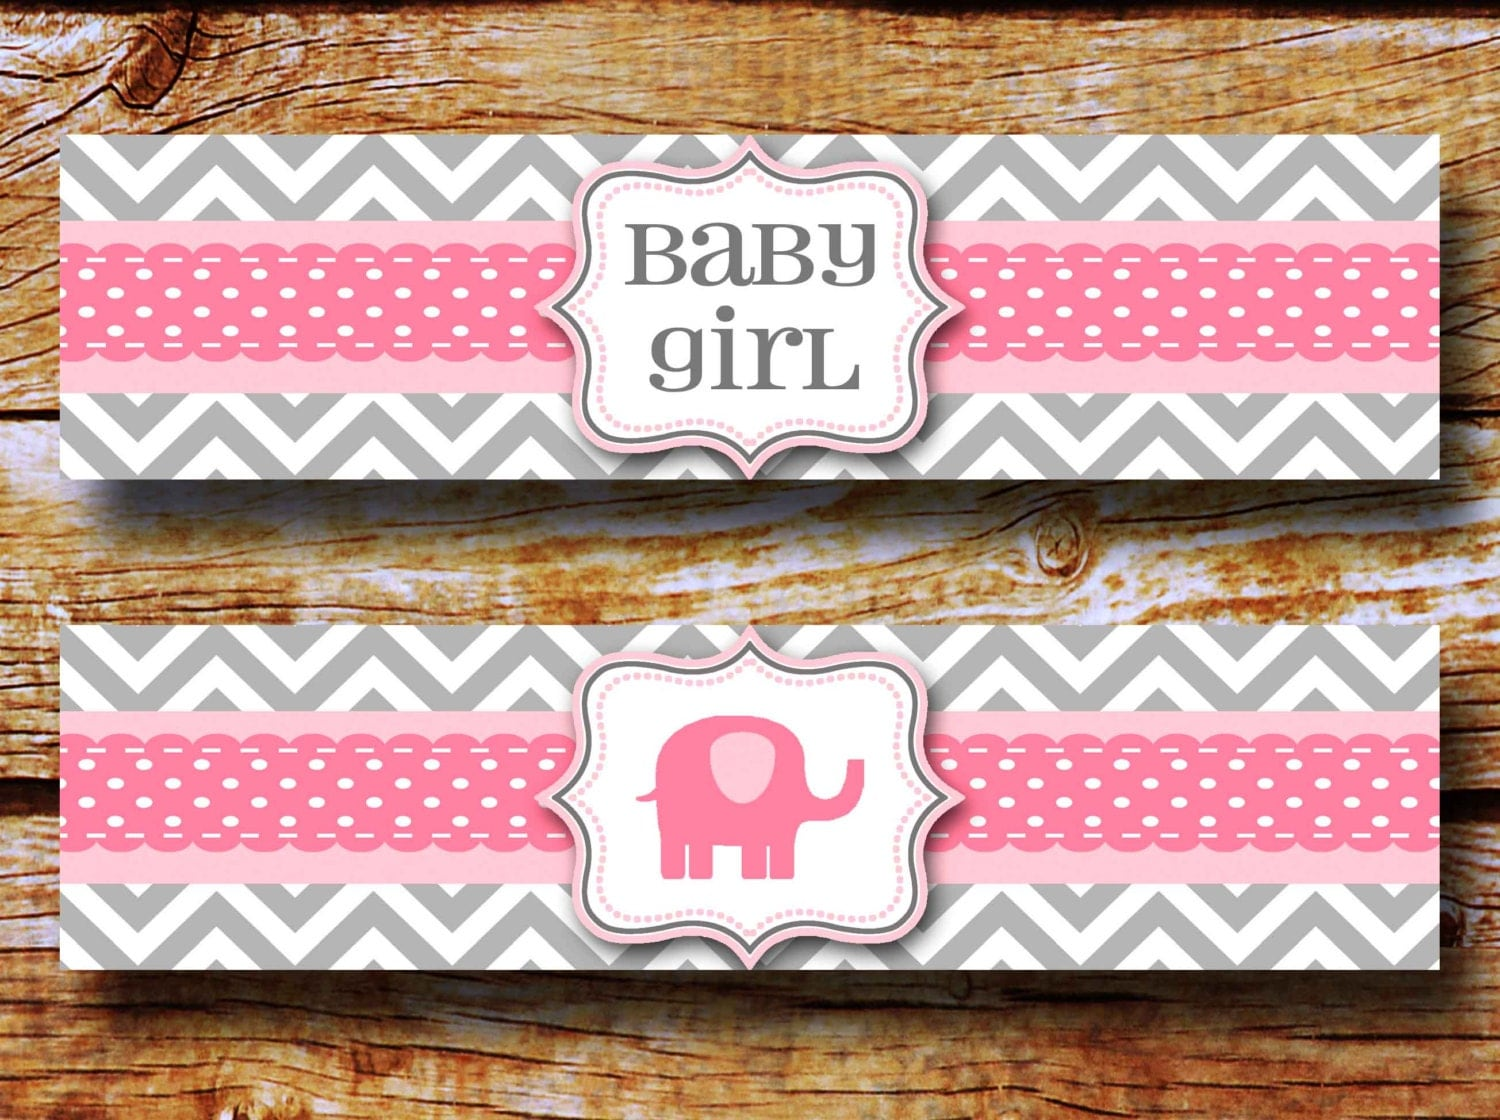 It's just a picture of Adorable Free Printable Water Bottle Labels for Baby Shower